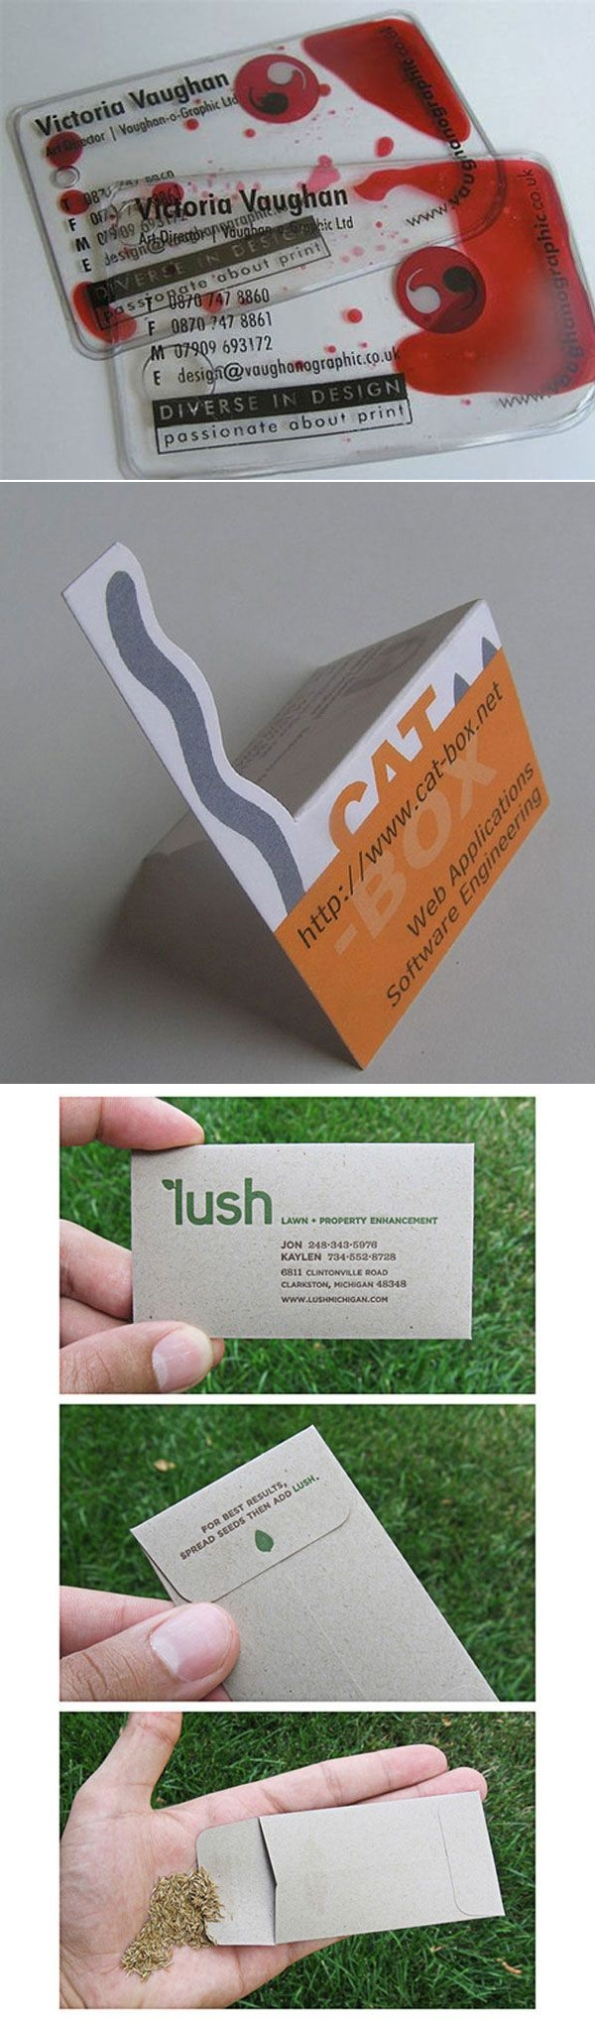 100 Creative Business Cards | Richworks